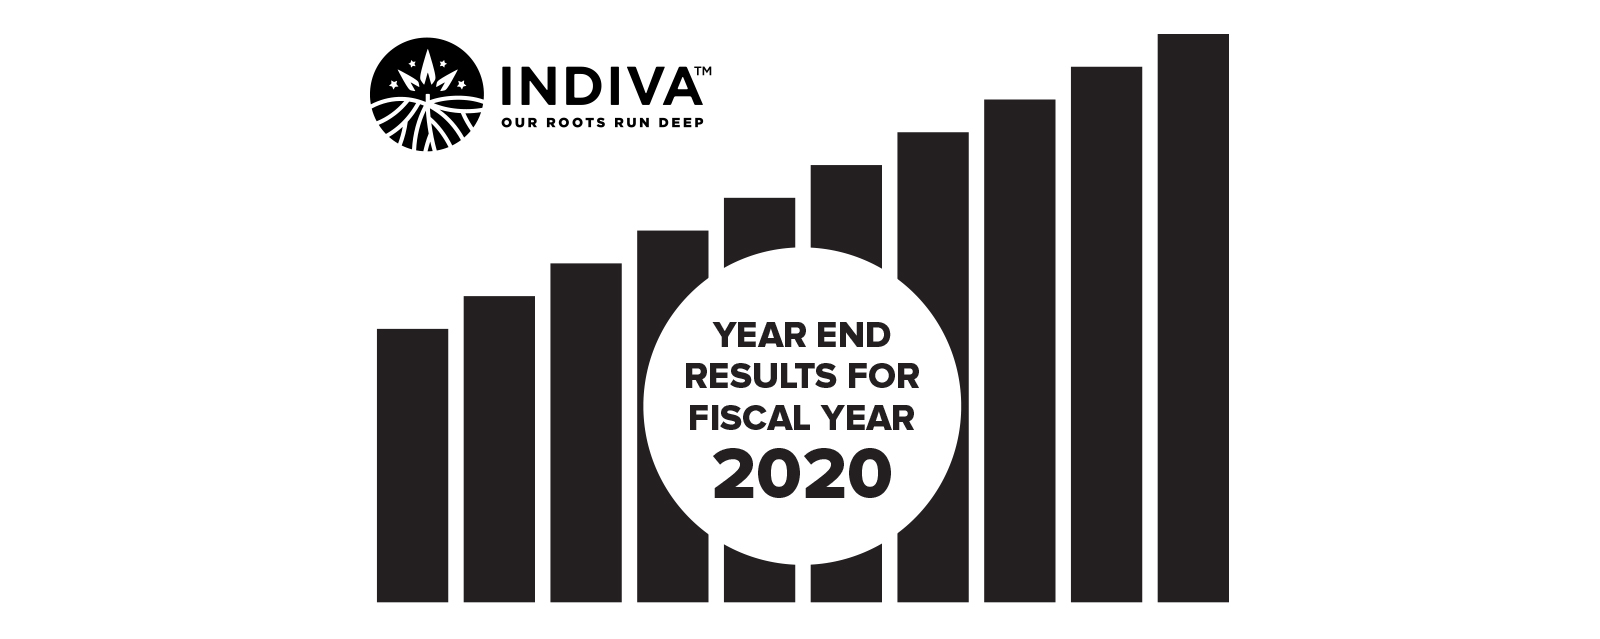 Press Release – Indiva to Report Year End Results for Fiscal Year 2020 on Thursday May 13